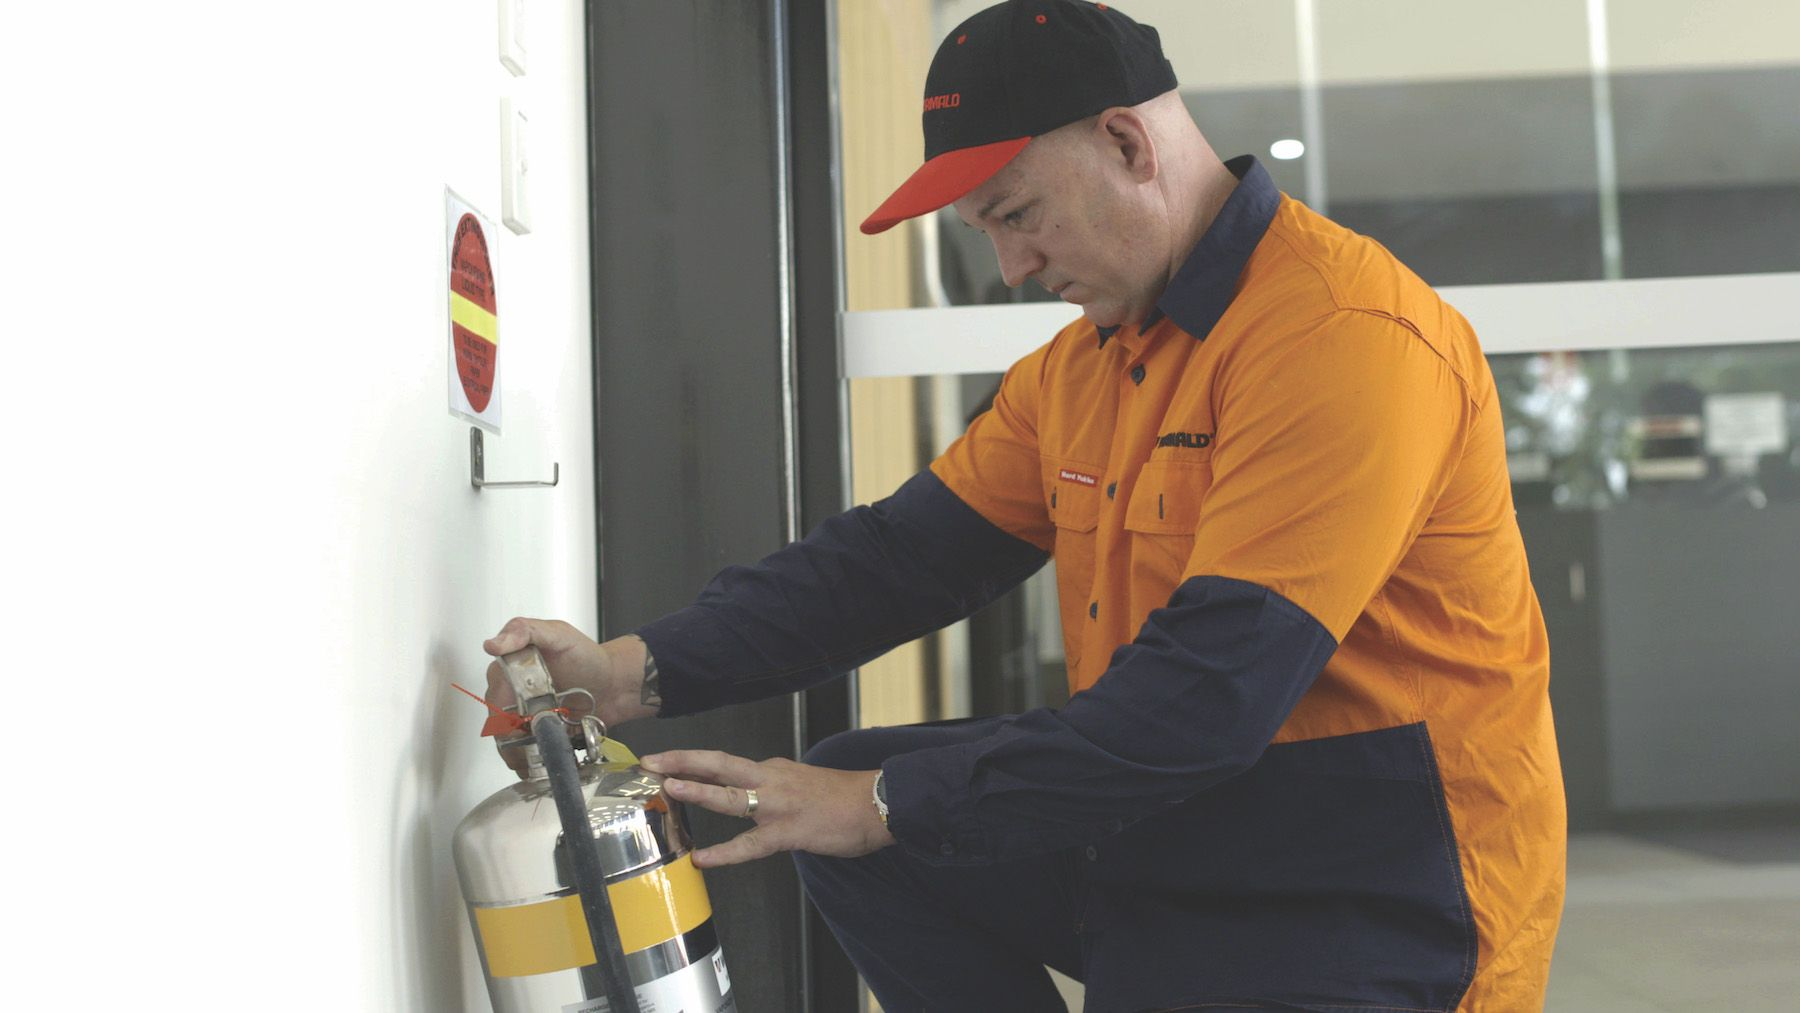 A day in the life of a Wormald technician: Introducing Grant Thompson, Portable Fire Equipment Tester